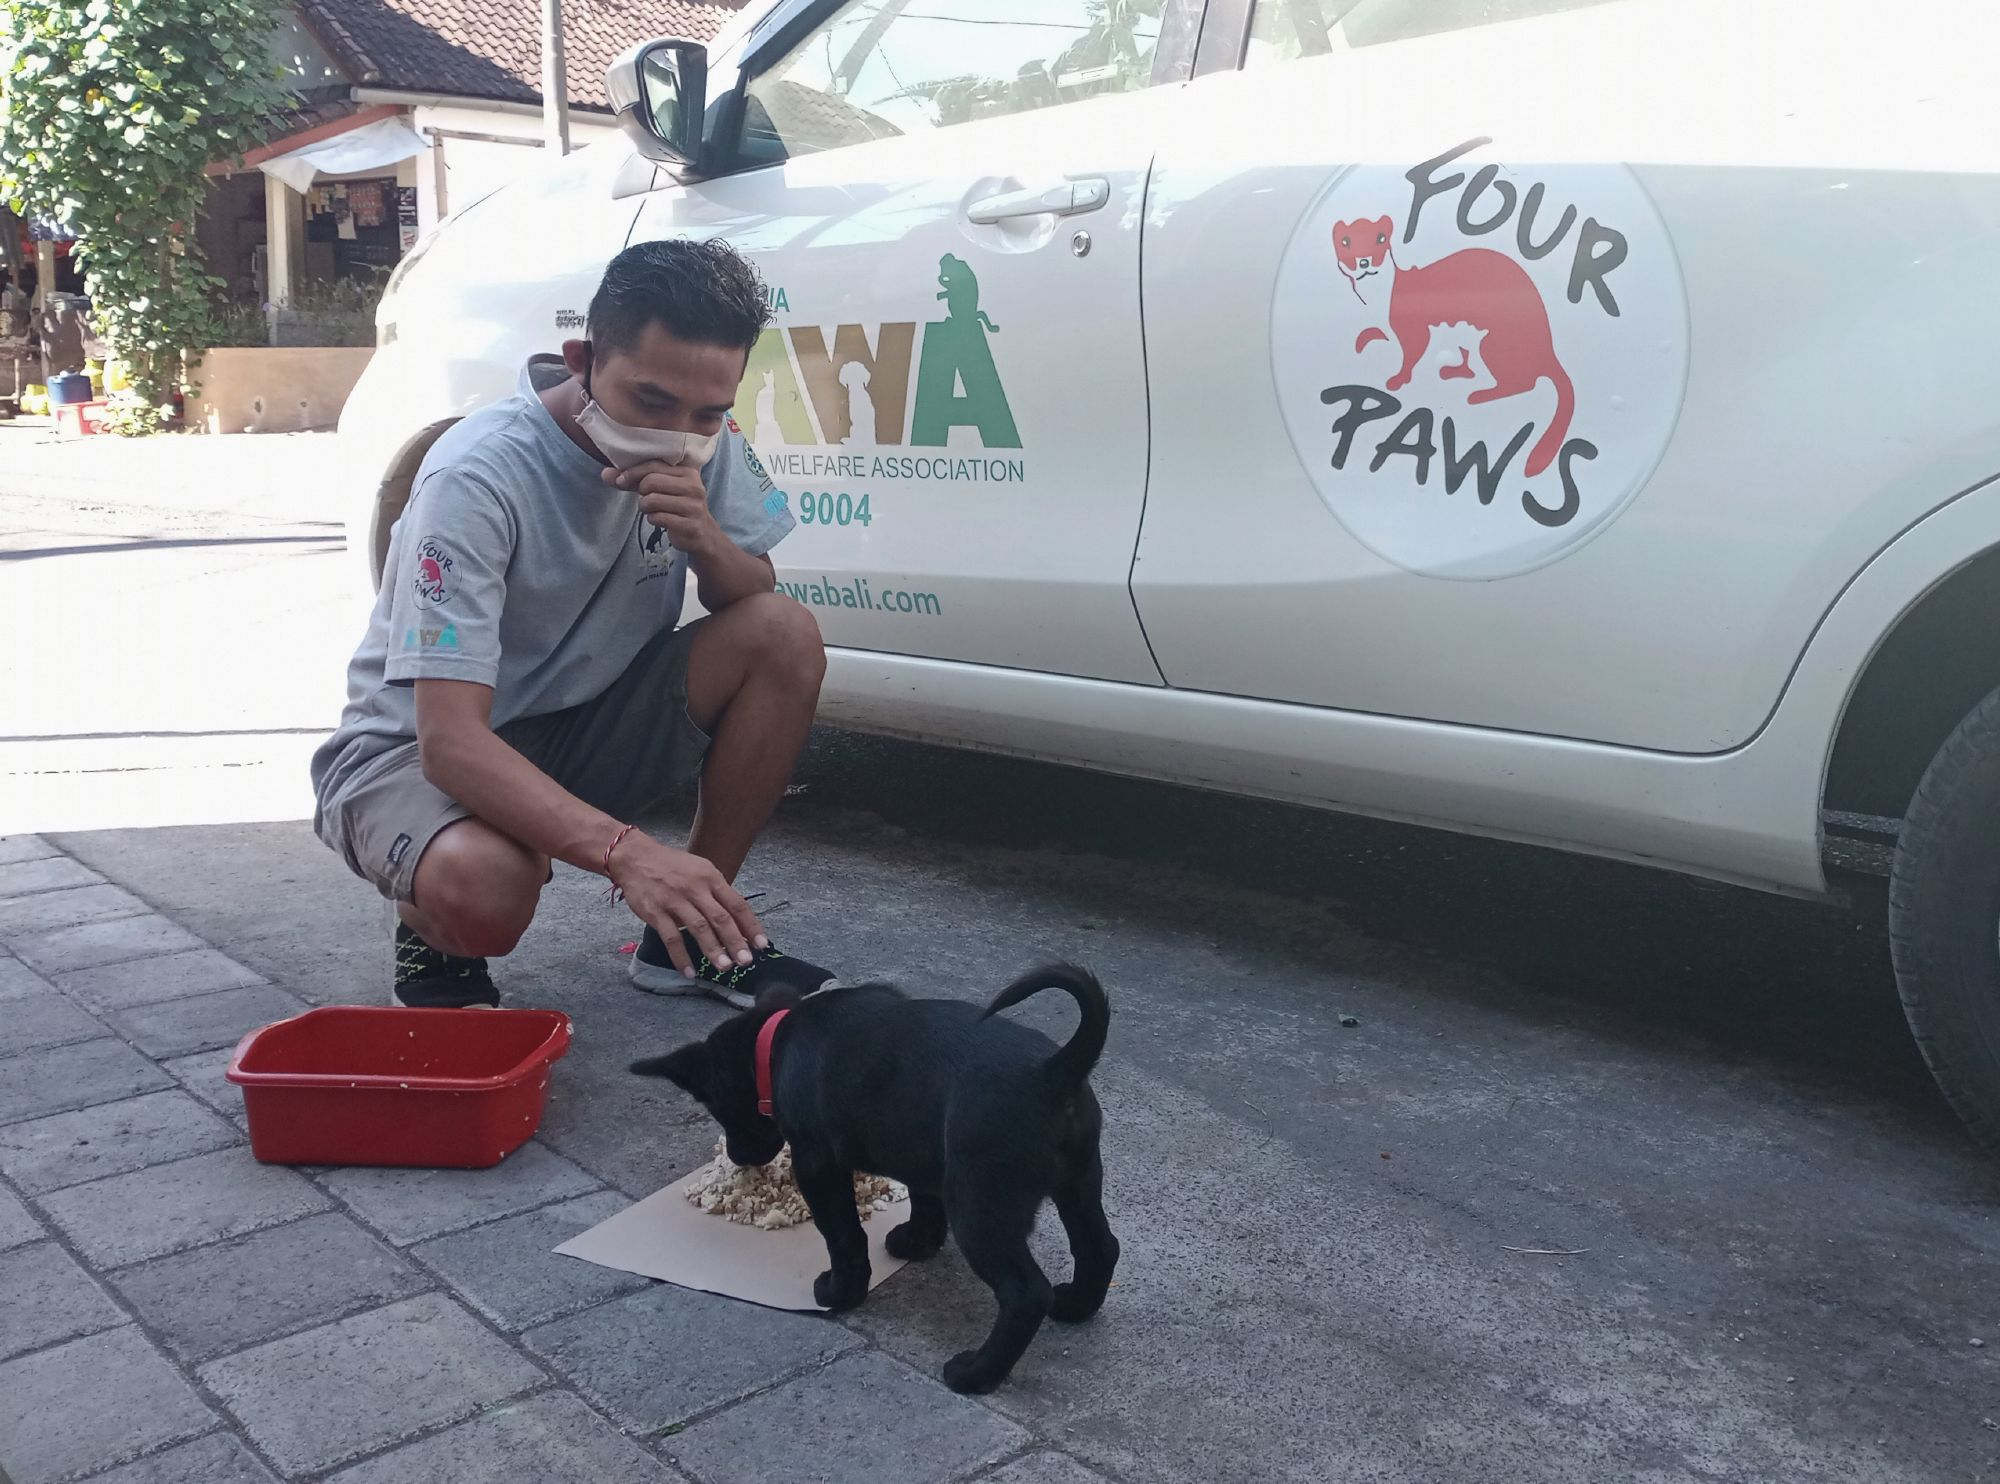 FOUR PAWS and Bali Animal Welfare Association a